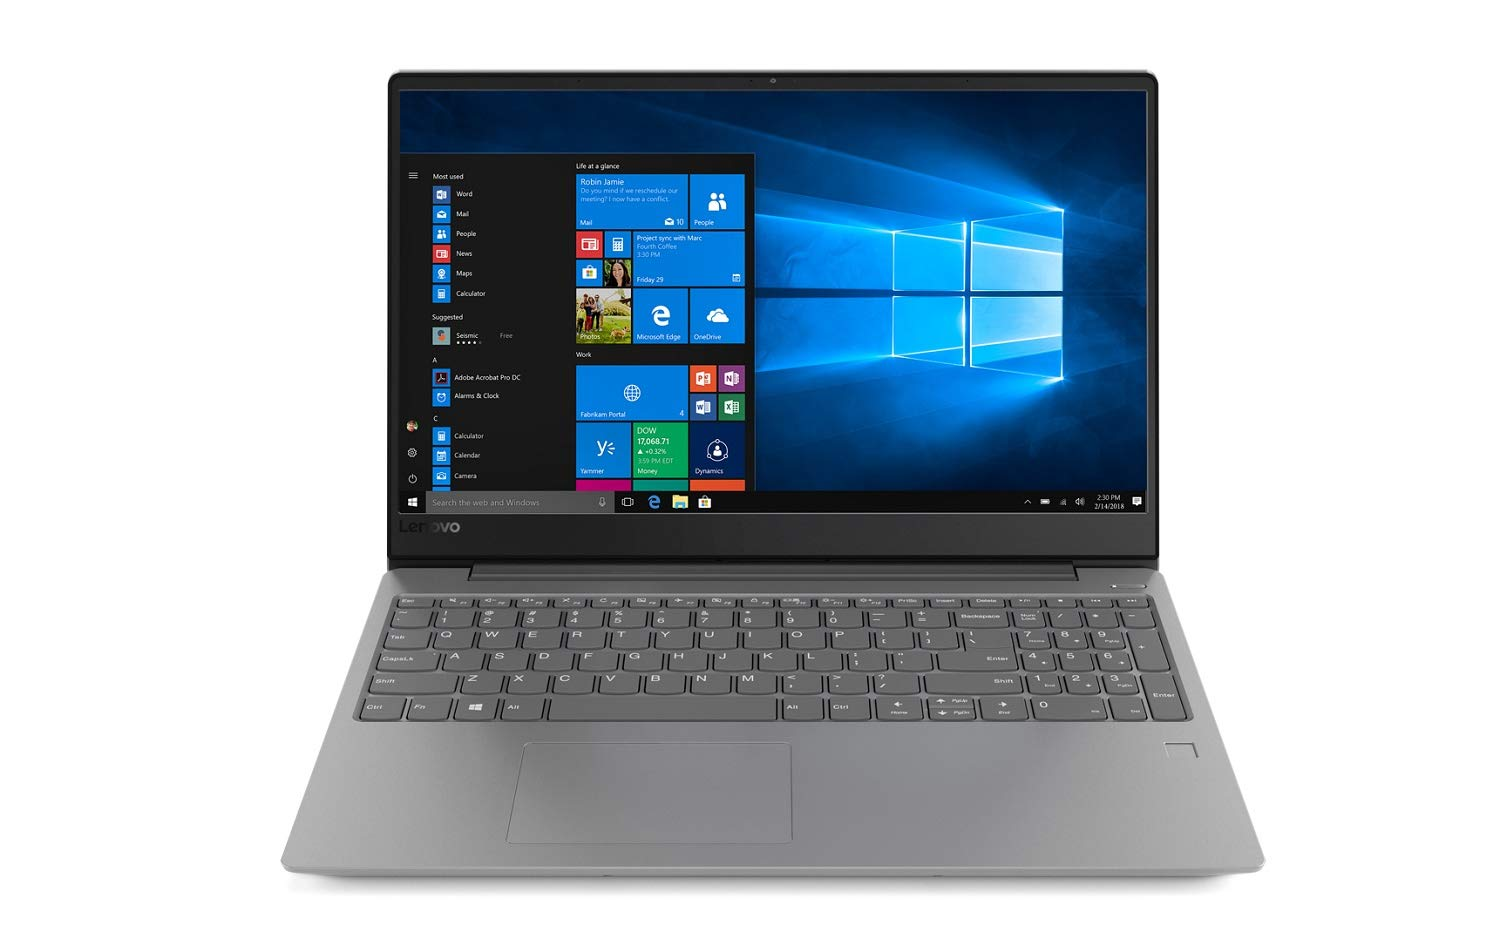 ★決算特価商品★ Lenovo IdeaPad Premium Home Gray and Business Laptop (Intel i5-8250U 10 8th Gen i5-8250U Quad Core, 12GB RAM, 2TB HDD + 16GB Intel Optane, 15.6